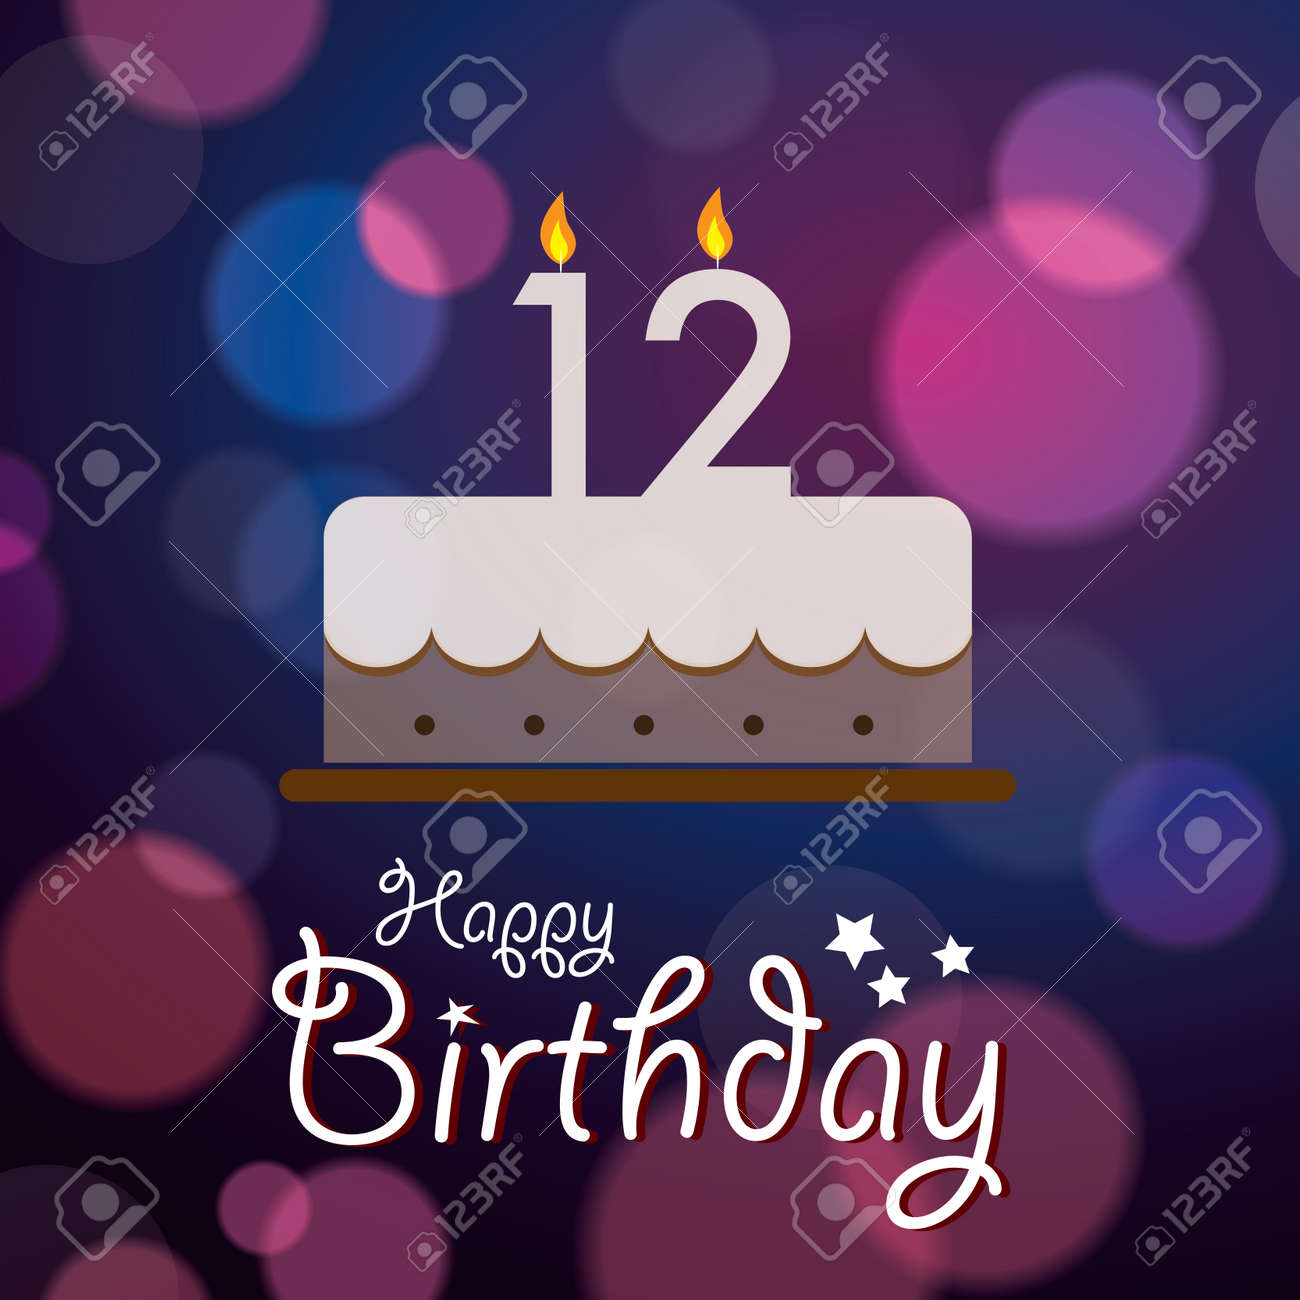 12th birthday Happy 12th Birthday   Bokeh Vector Background With Cake Royalty  12th birthday